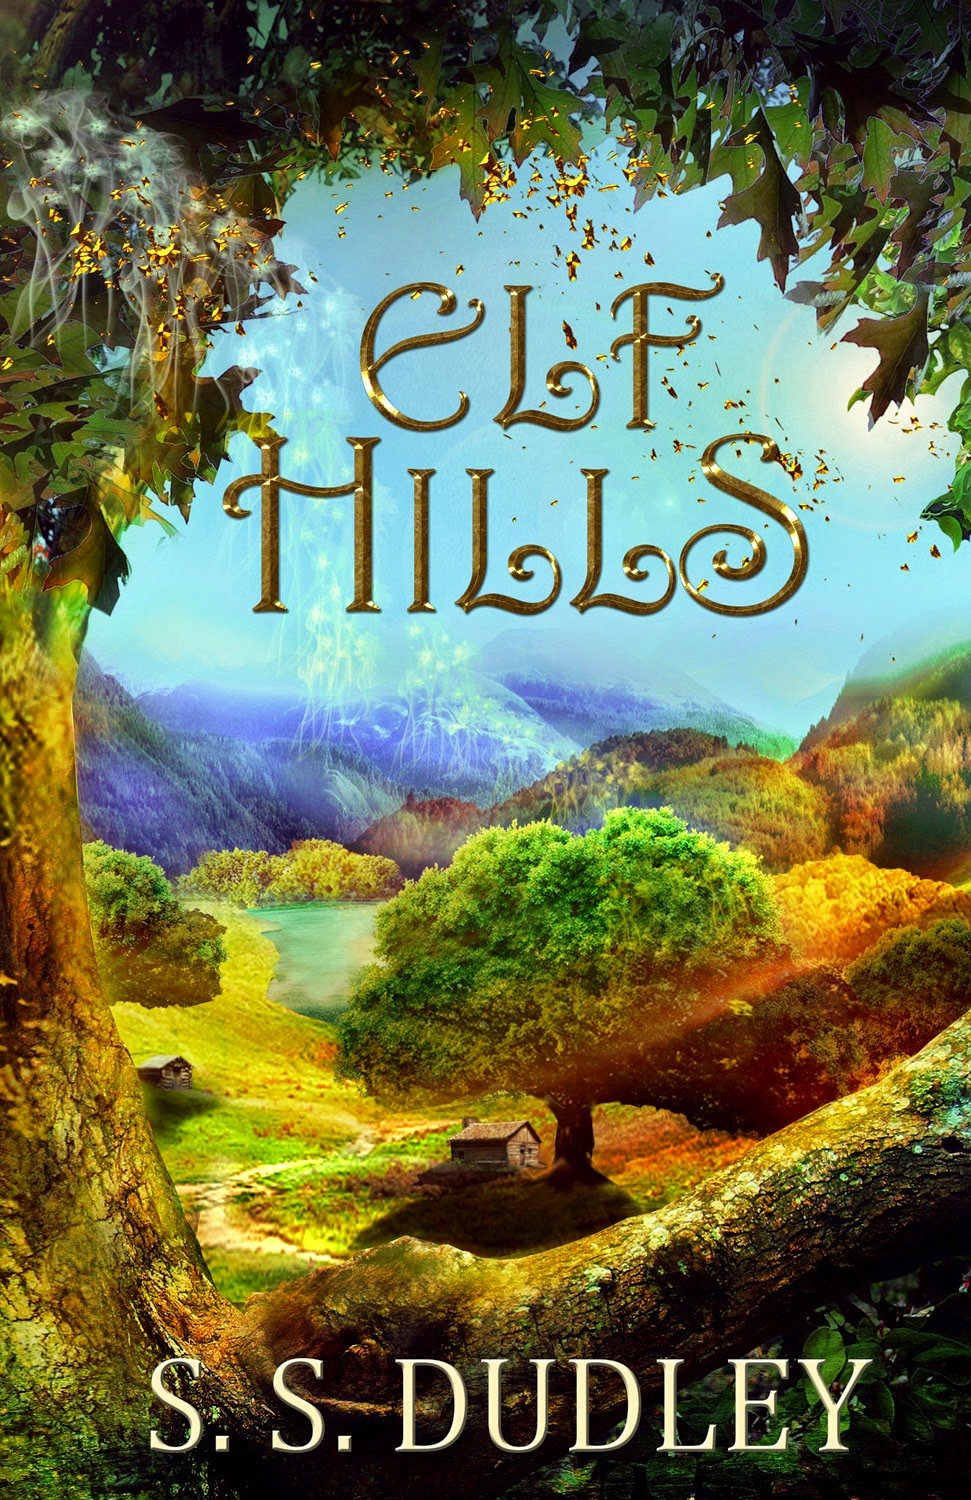 Interview with fantasy adventure author S.S. Dudley